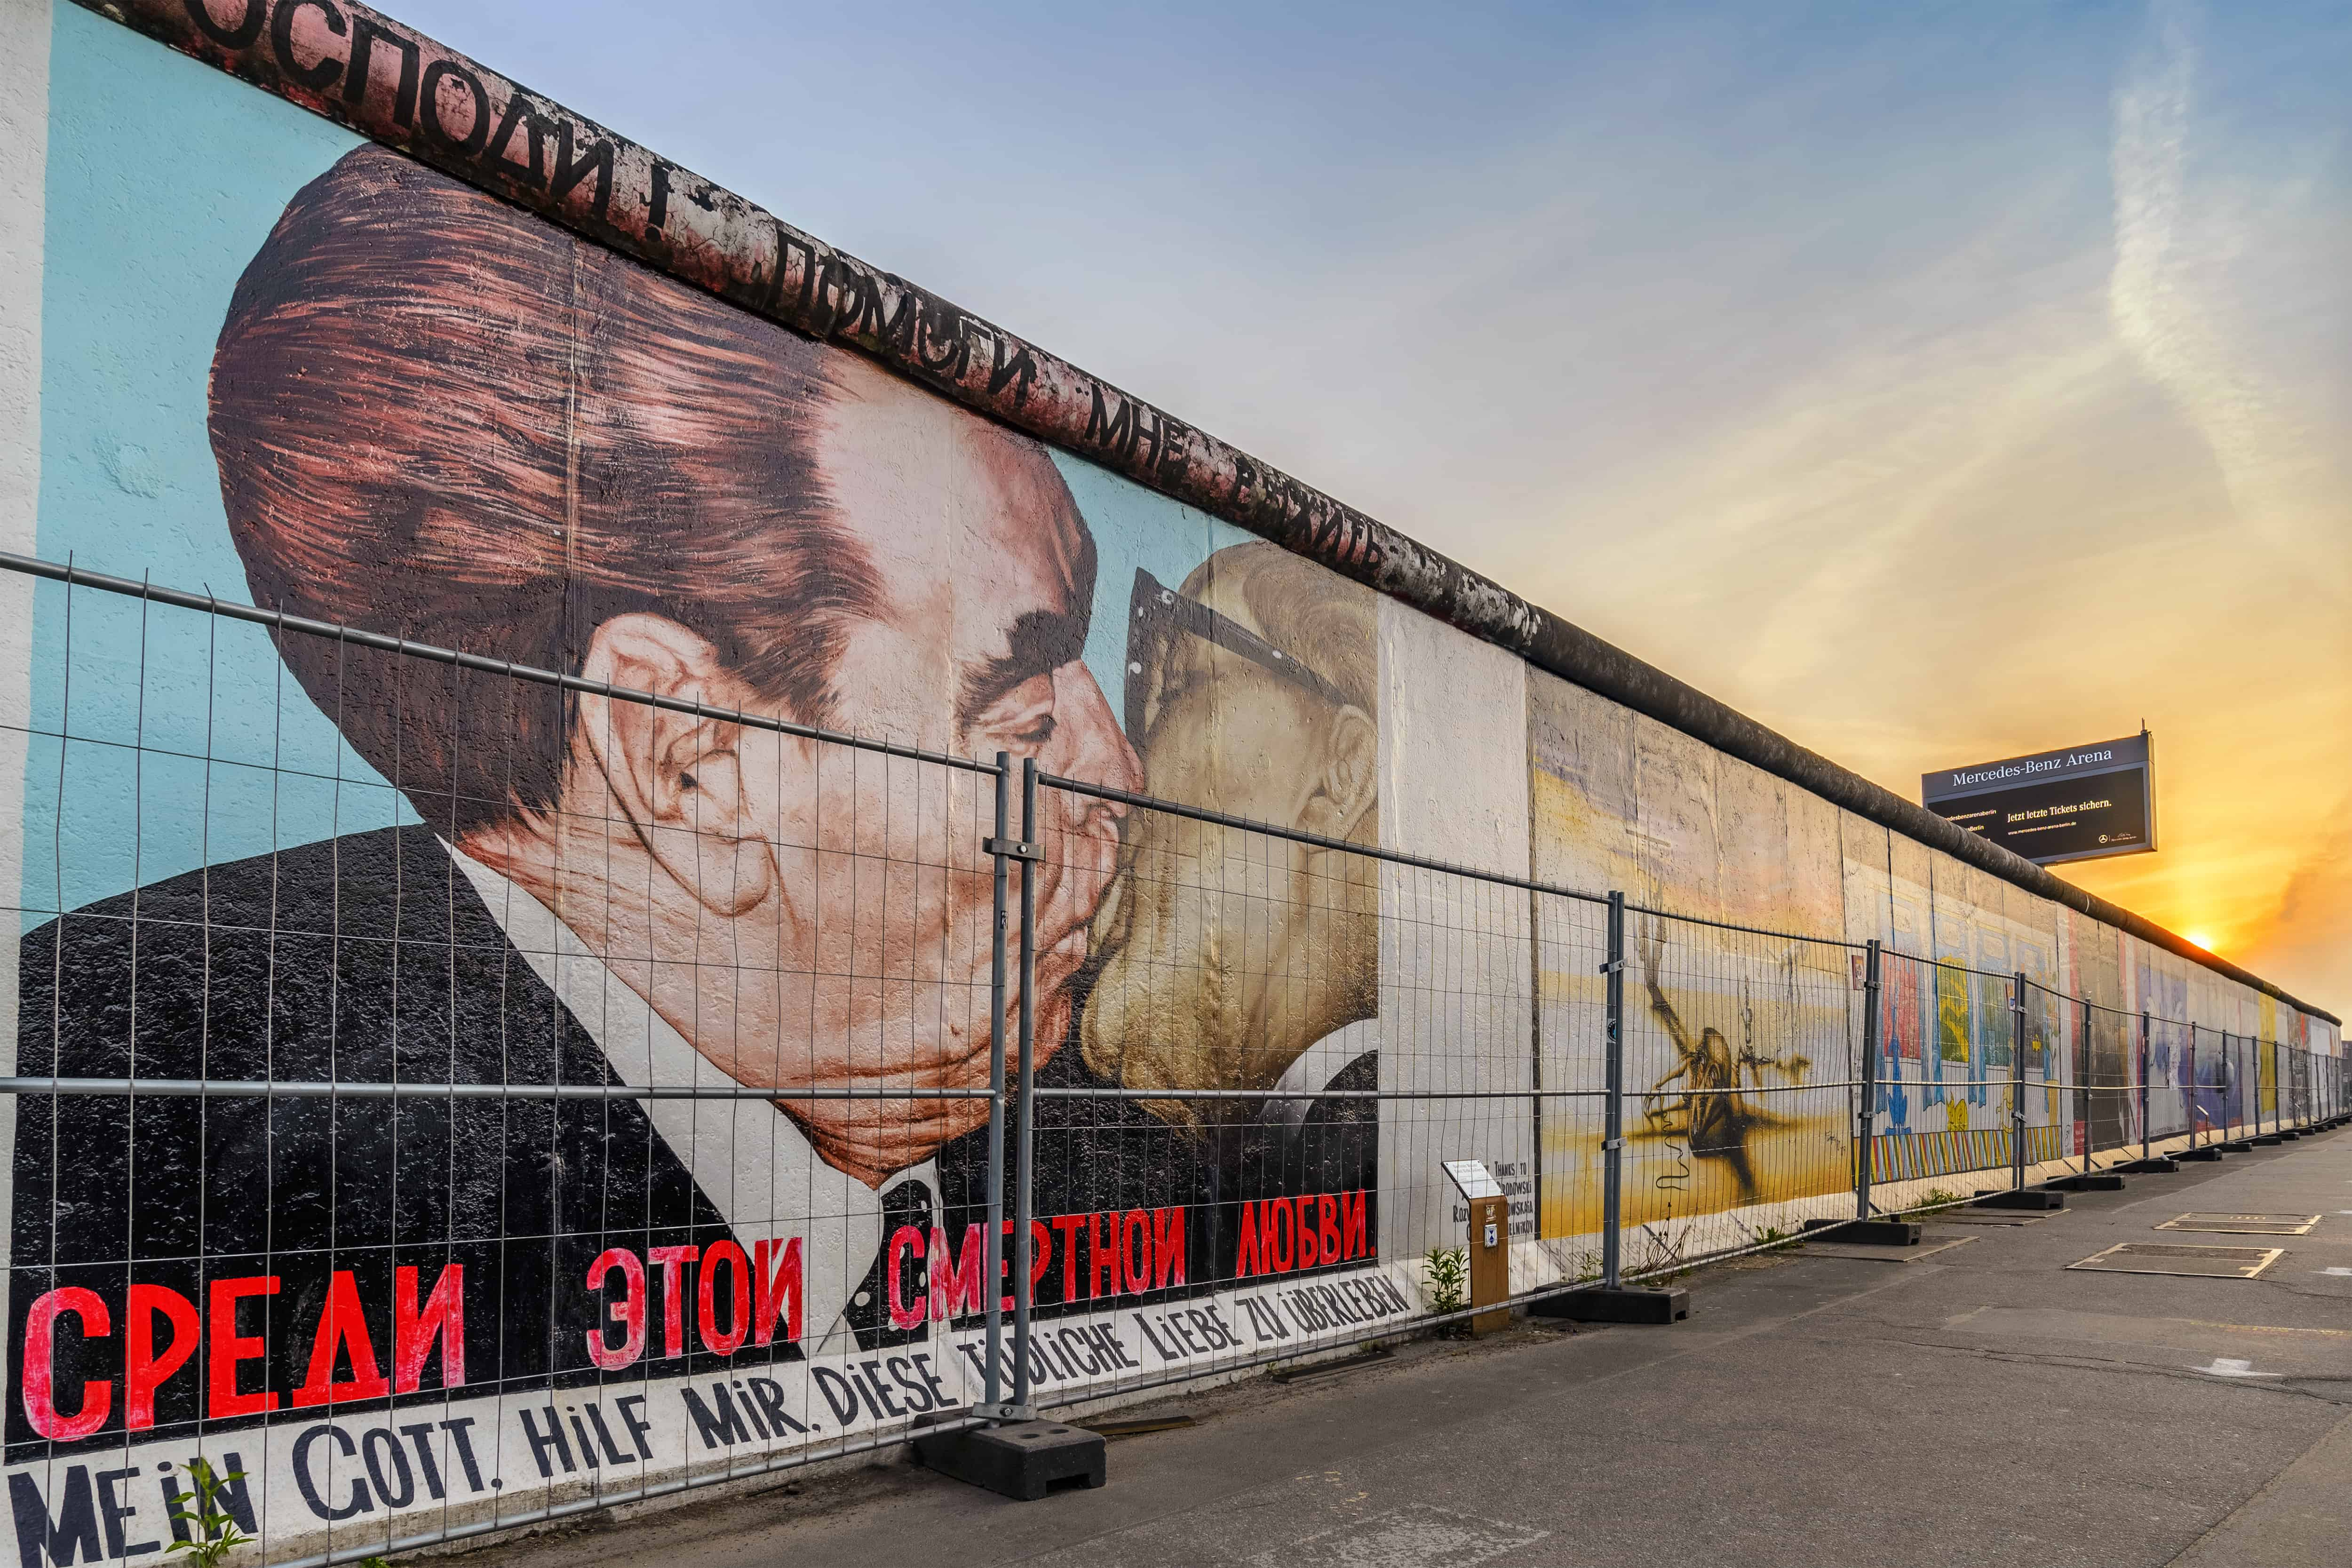 Berlin wall, historical events facts